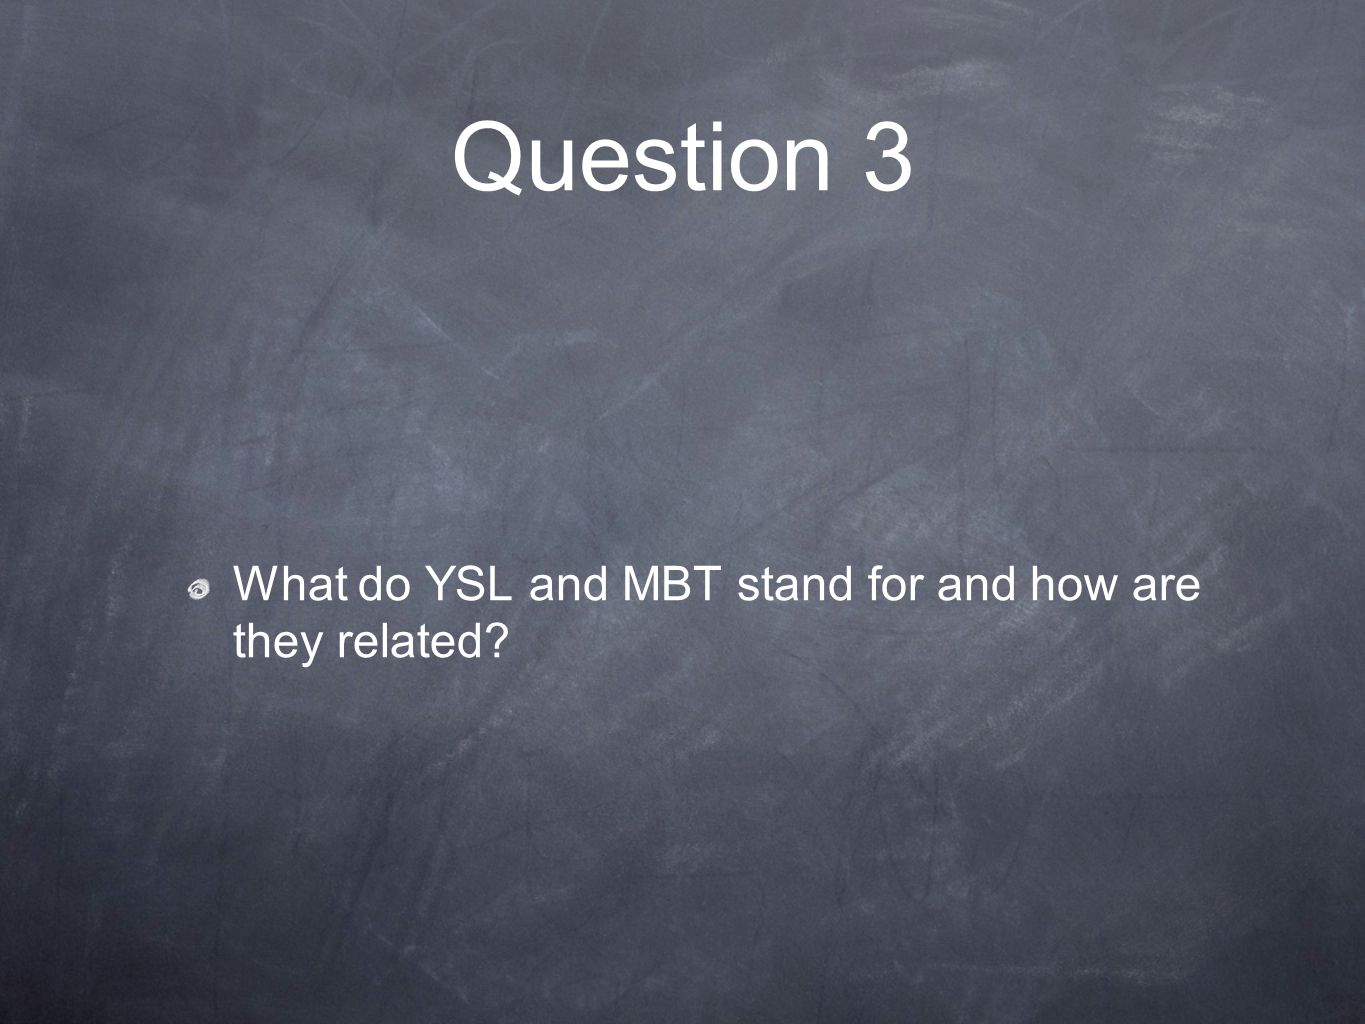 Question 3 What do YSL and MBT stand for and how are they related